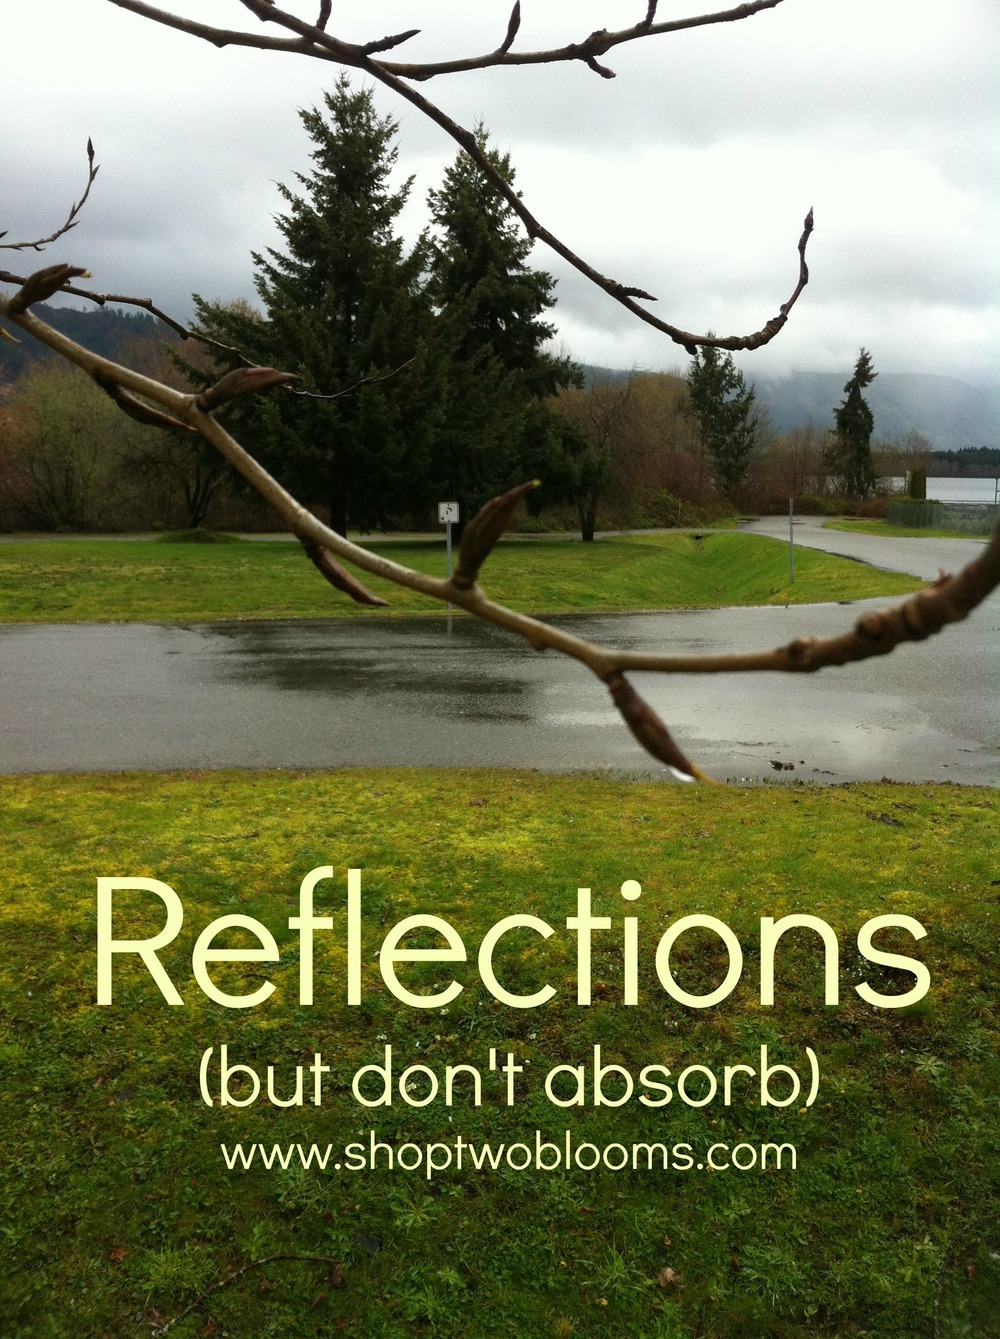 shoptwoblooms Reflections words.jpg